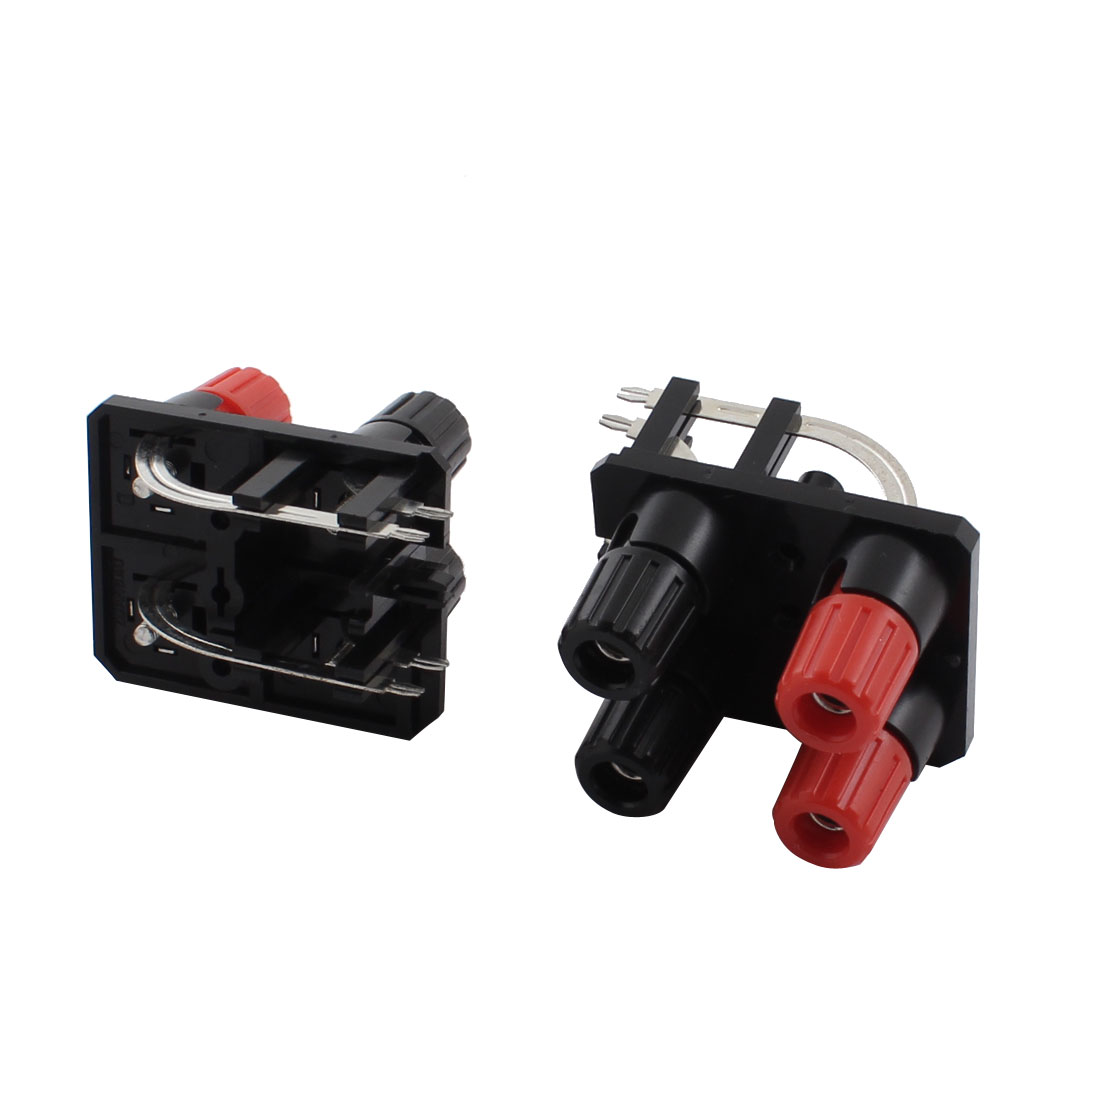 2 Pcs 2 Row Red Black 4 Pin 4 Position Screw Speaker Terminals